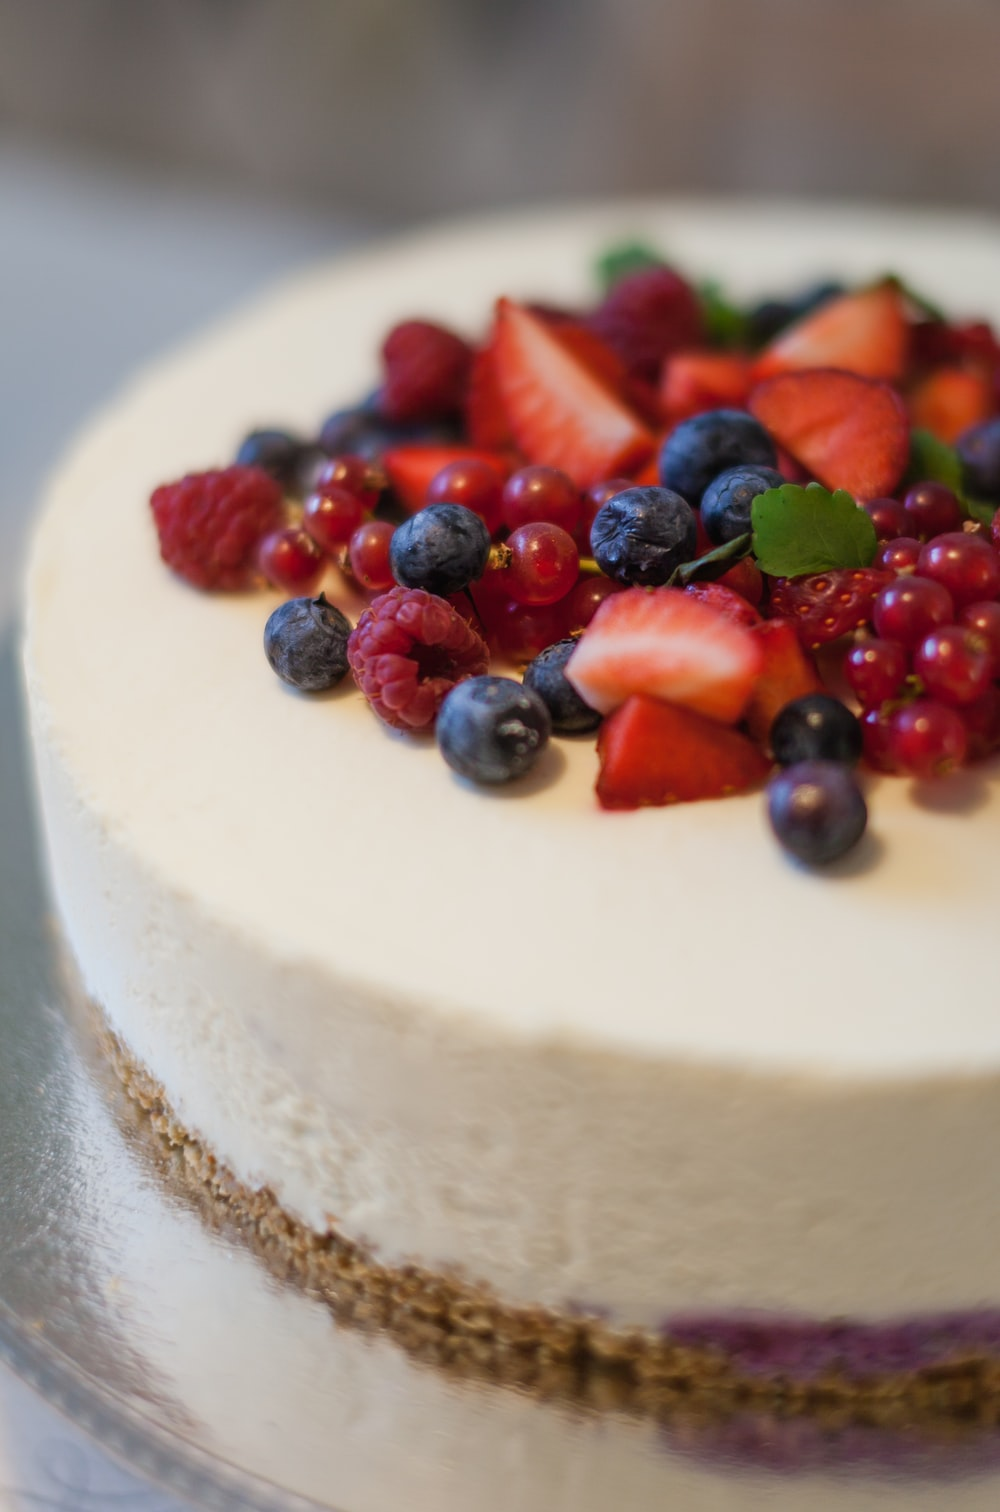 shallow focus photo of cake with sliced strawberries